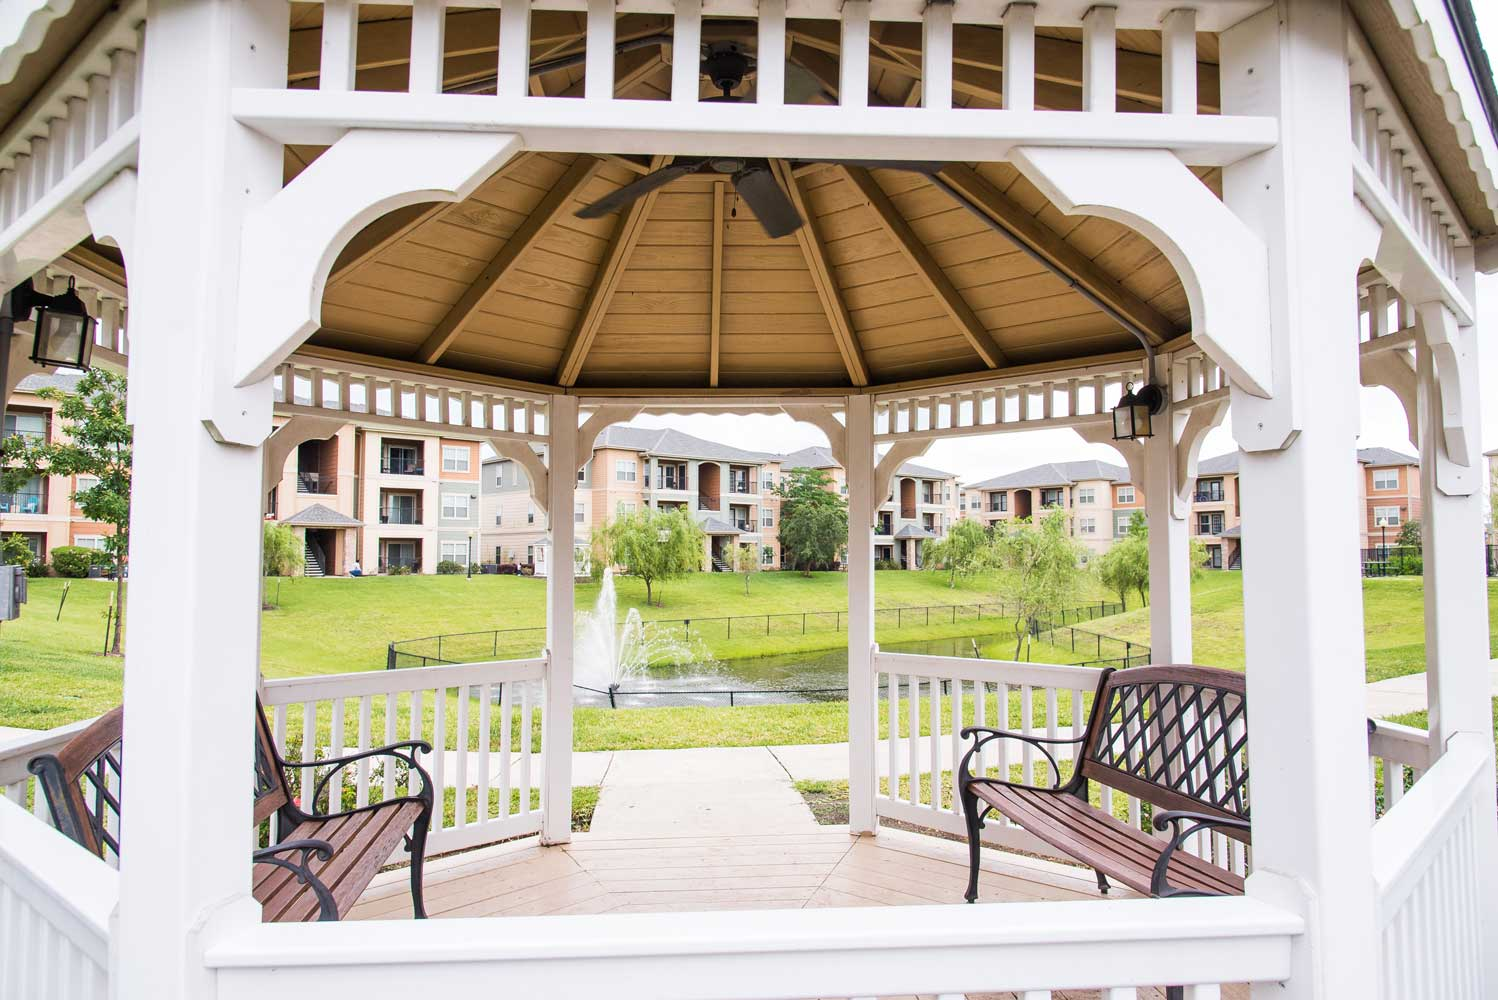 Gazebo at the Oxford at Country Club Apartments in Baytown, TX